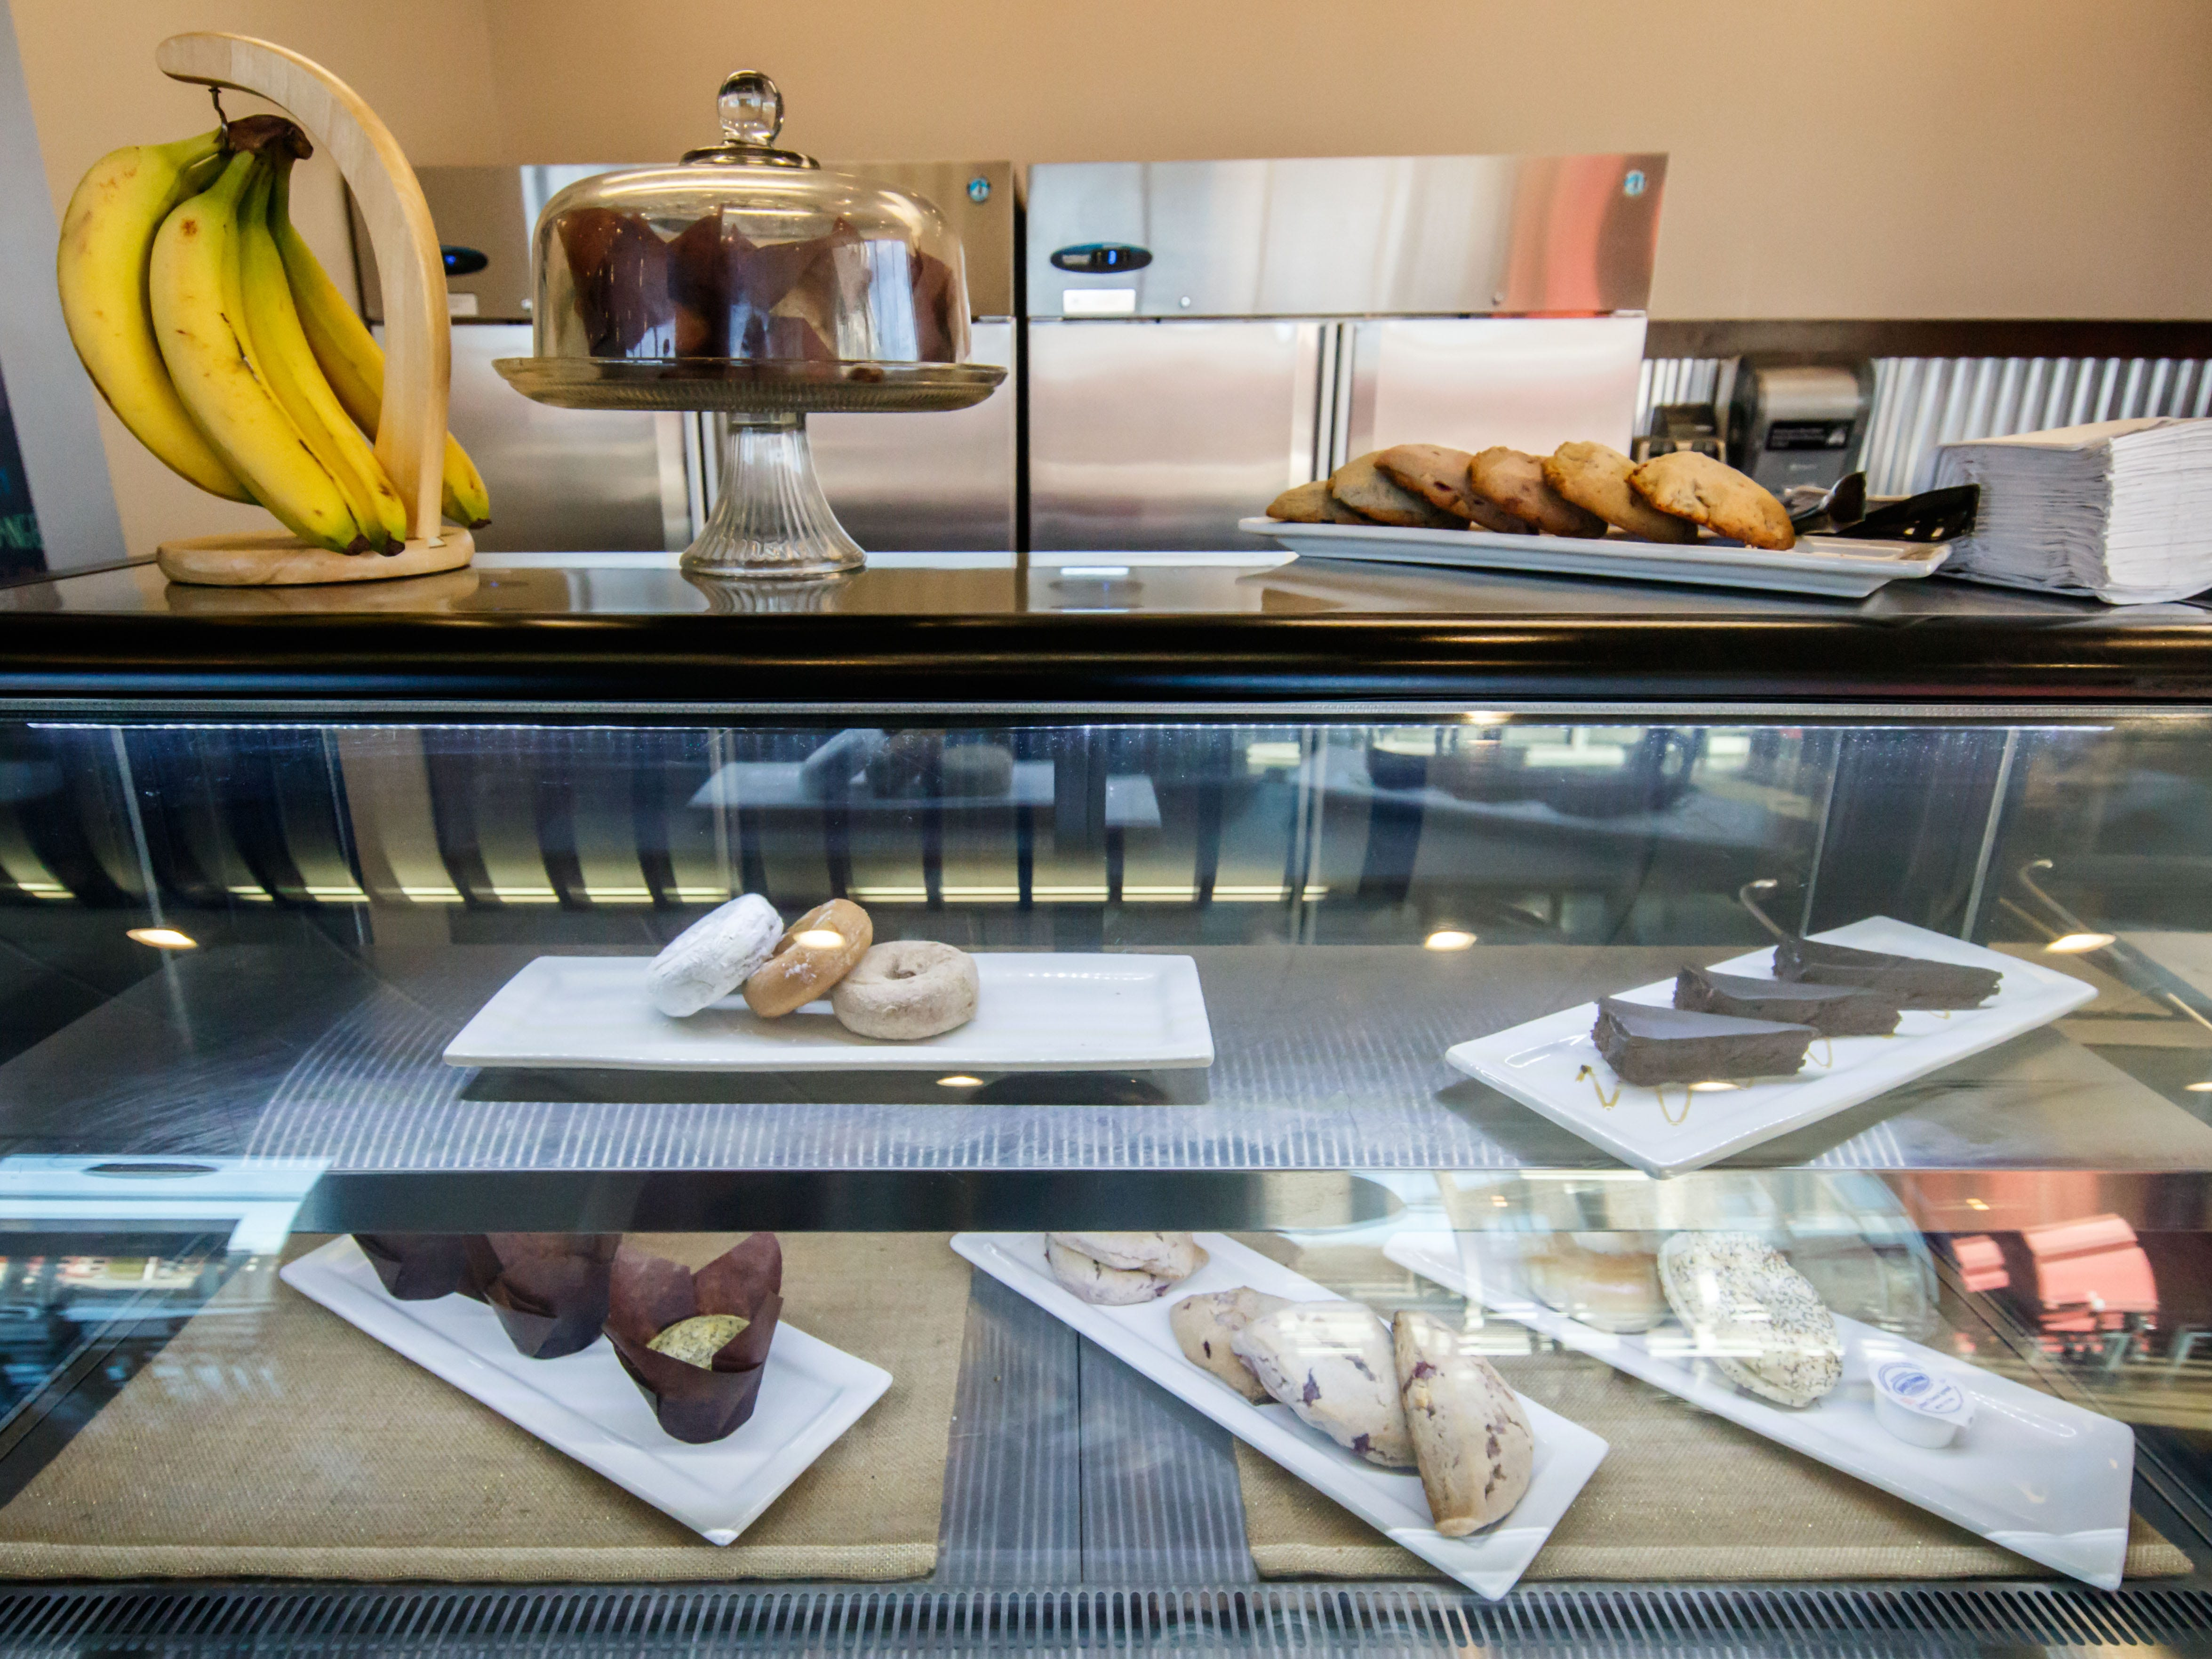 Cafe De Arts European coffee house and eatery also offers a variety of sandwiches, baked goods and gluten-free treats at the newly opened second location on the corner of Main Street and Waukesha Avenue in the Village of Sussex on Tuesday, Nov. 13, 2018.